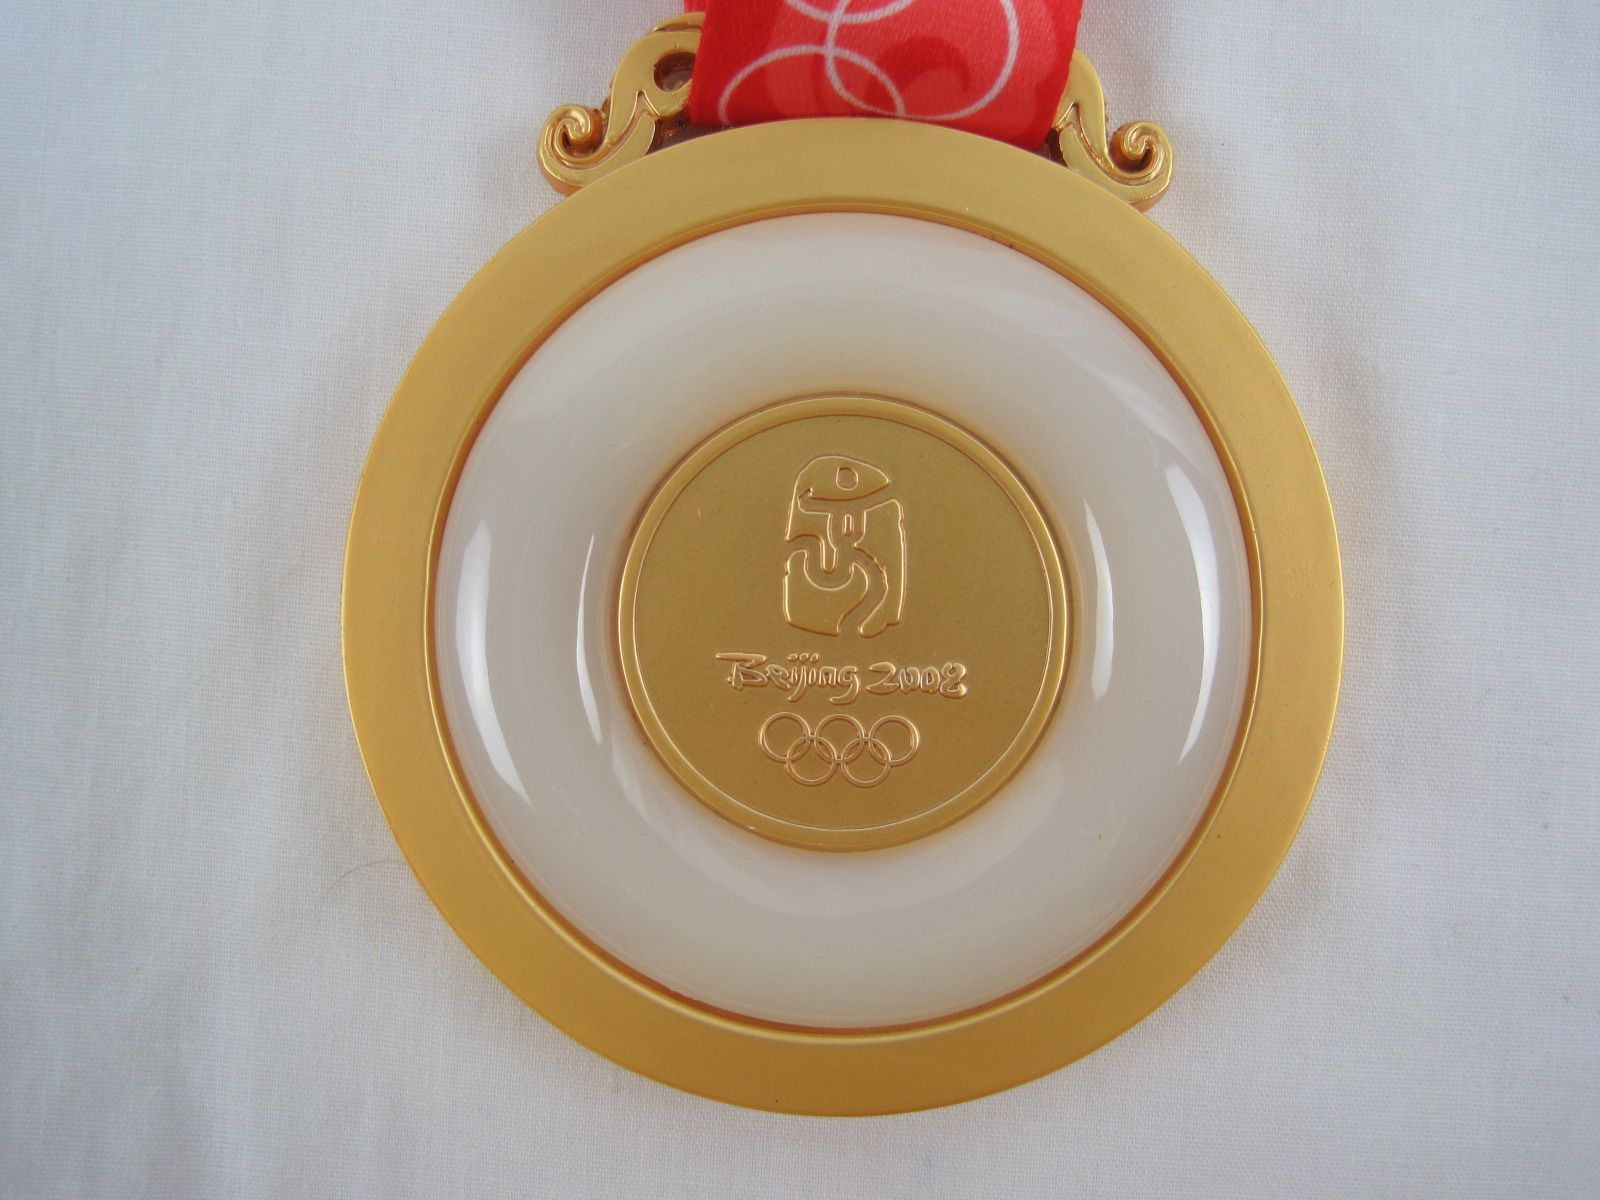 lot detail 2008 beijing olympic gold medal